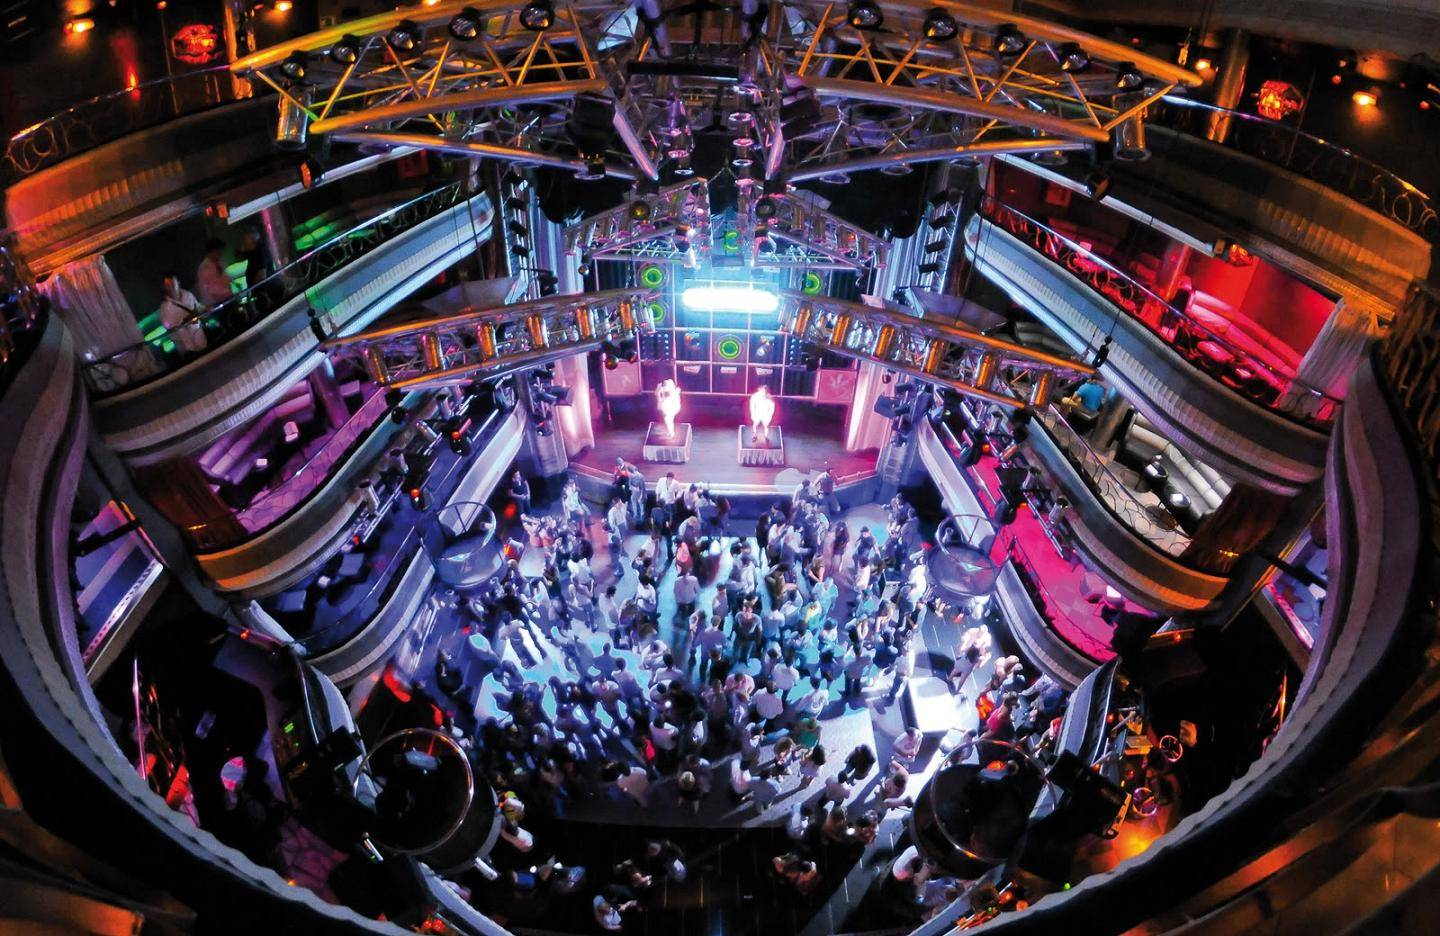 The Top 10 Best Clubs In Madrid Guaranteed To Offer You A Unique Nightlife Experience